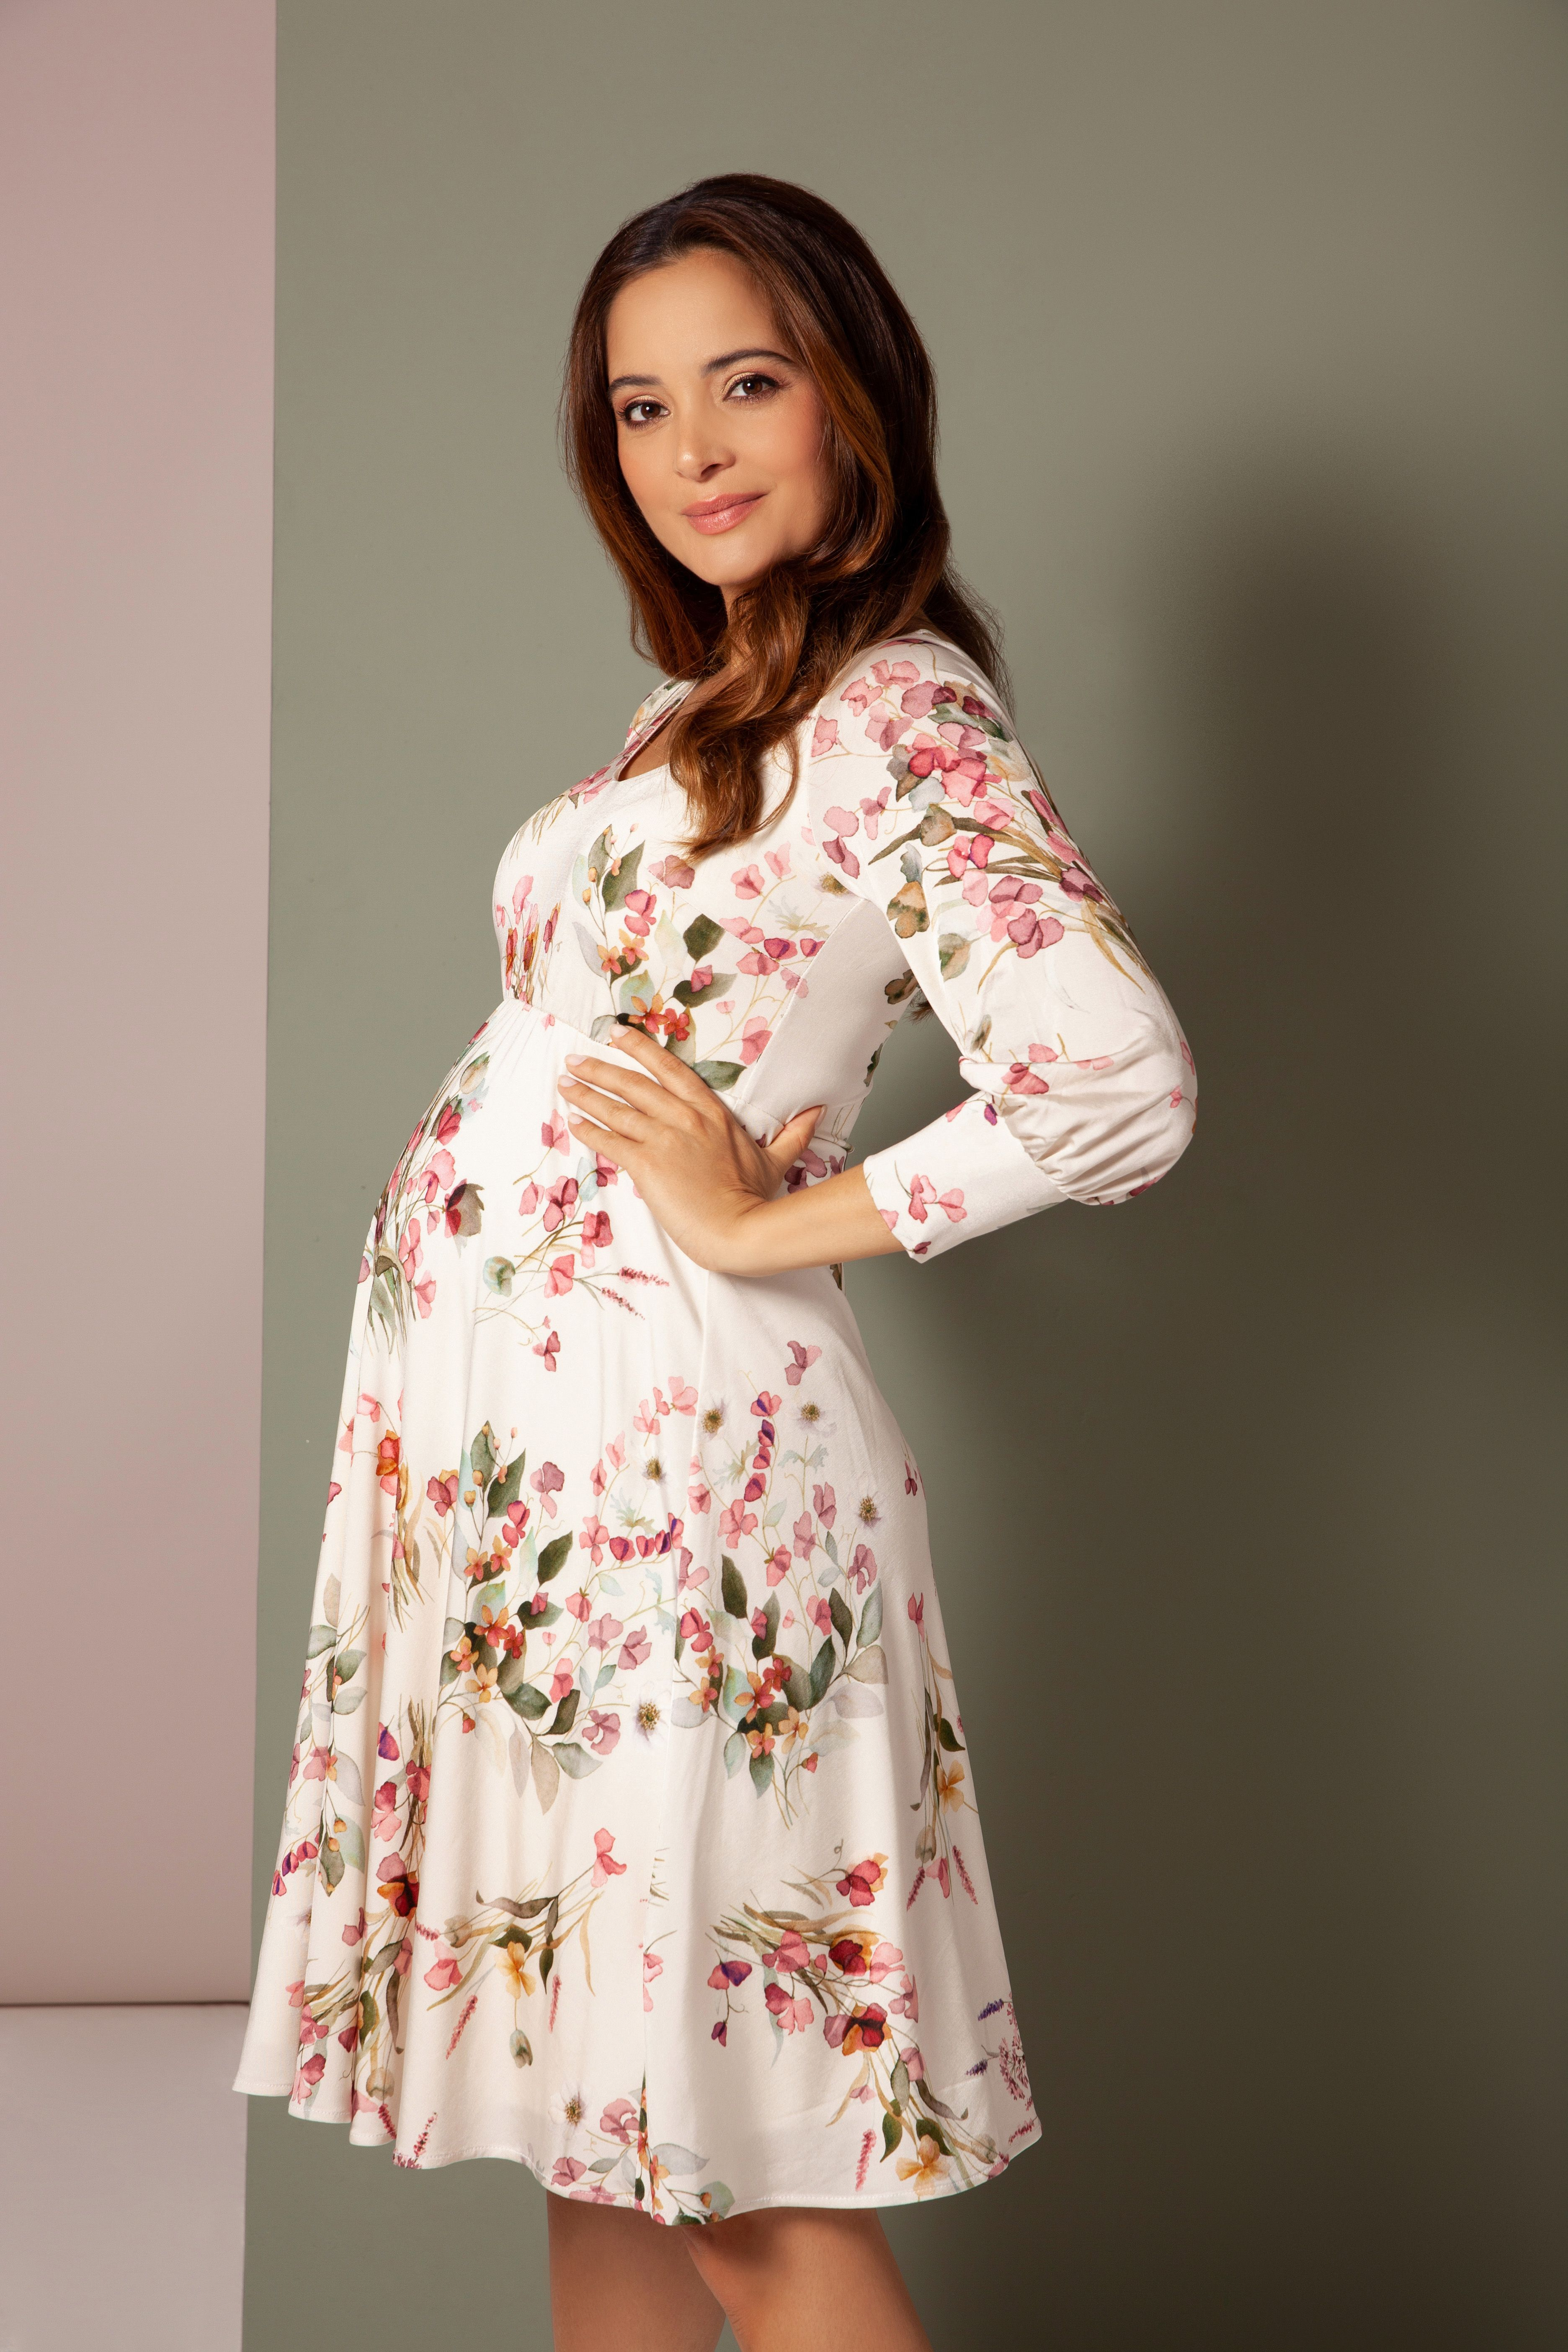 Pixie Maternity Dress Petal Pink Floral Maternity Wedding Dresses Evening Wear And Party Clothes By Tiffany Rose Maternity Dresses Dresses Pixie Dress